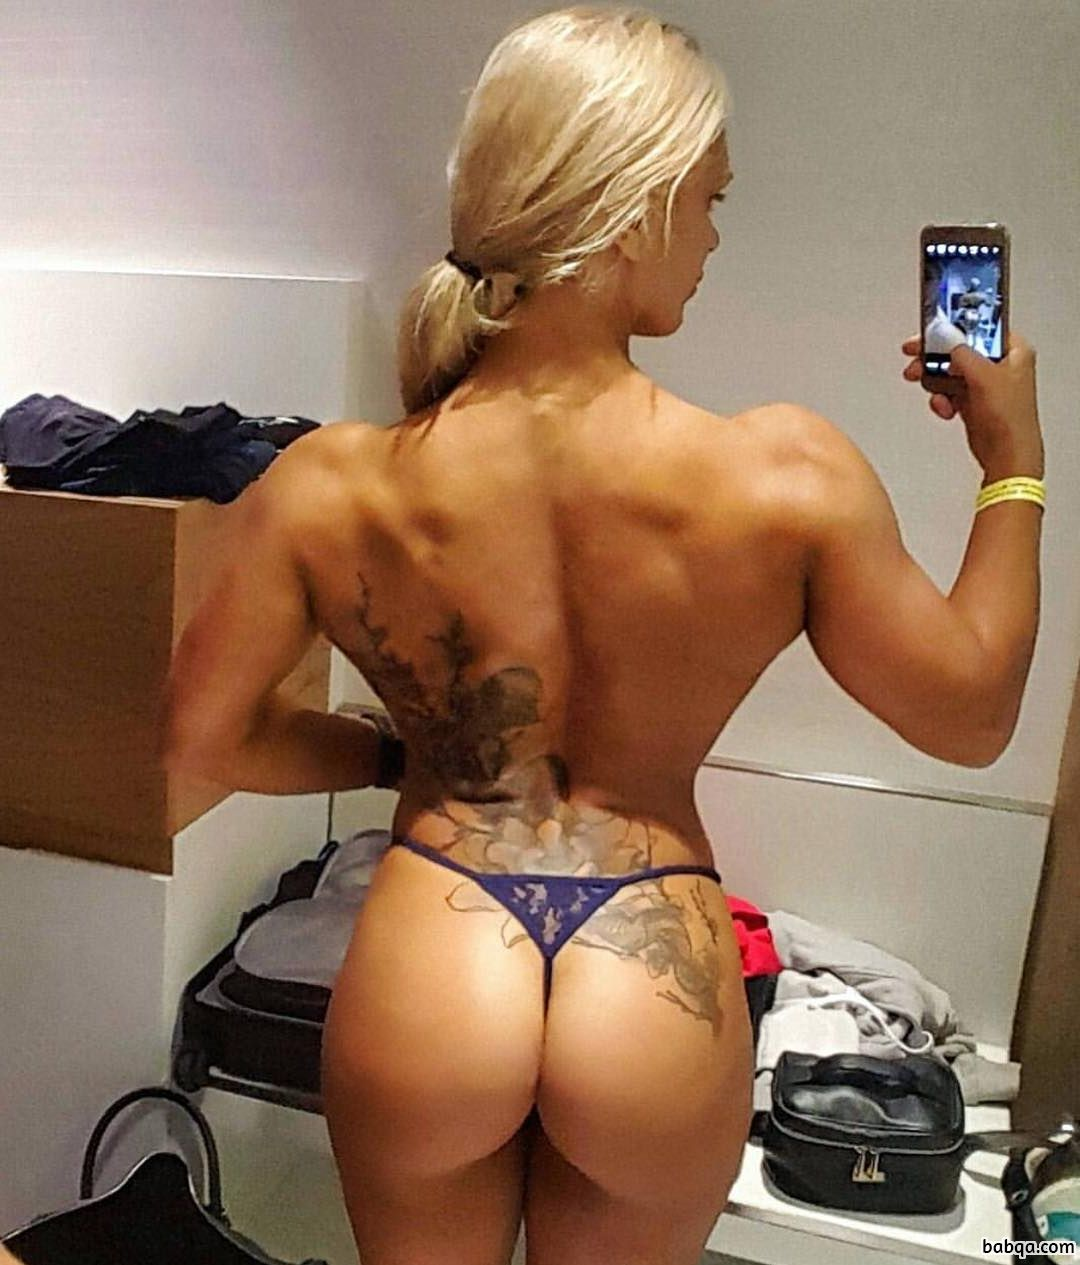 awesome female bodybuilder with strong body and muscle booty image from tumblr